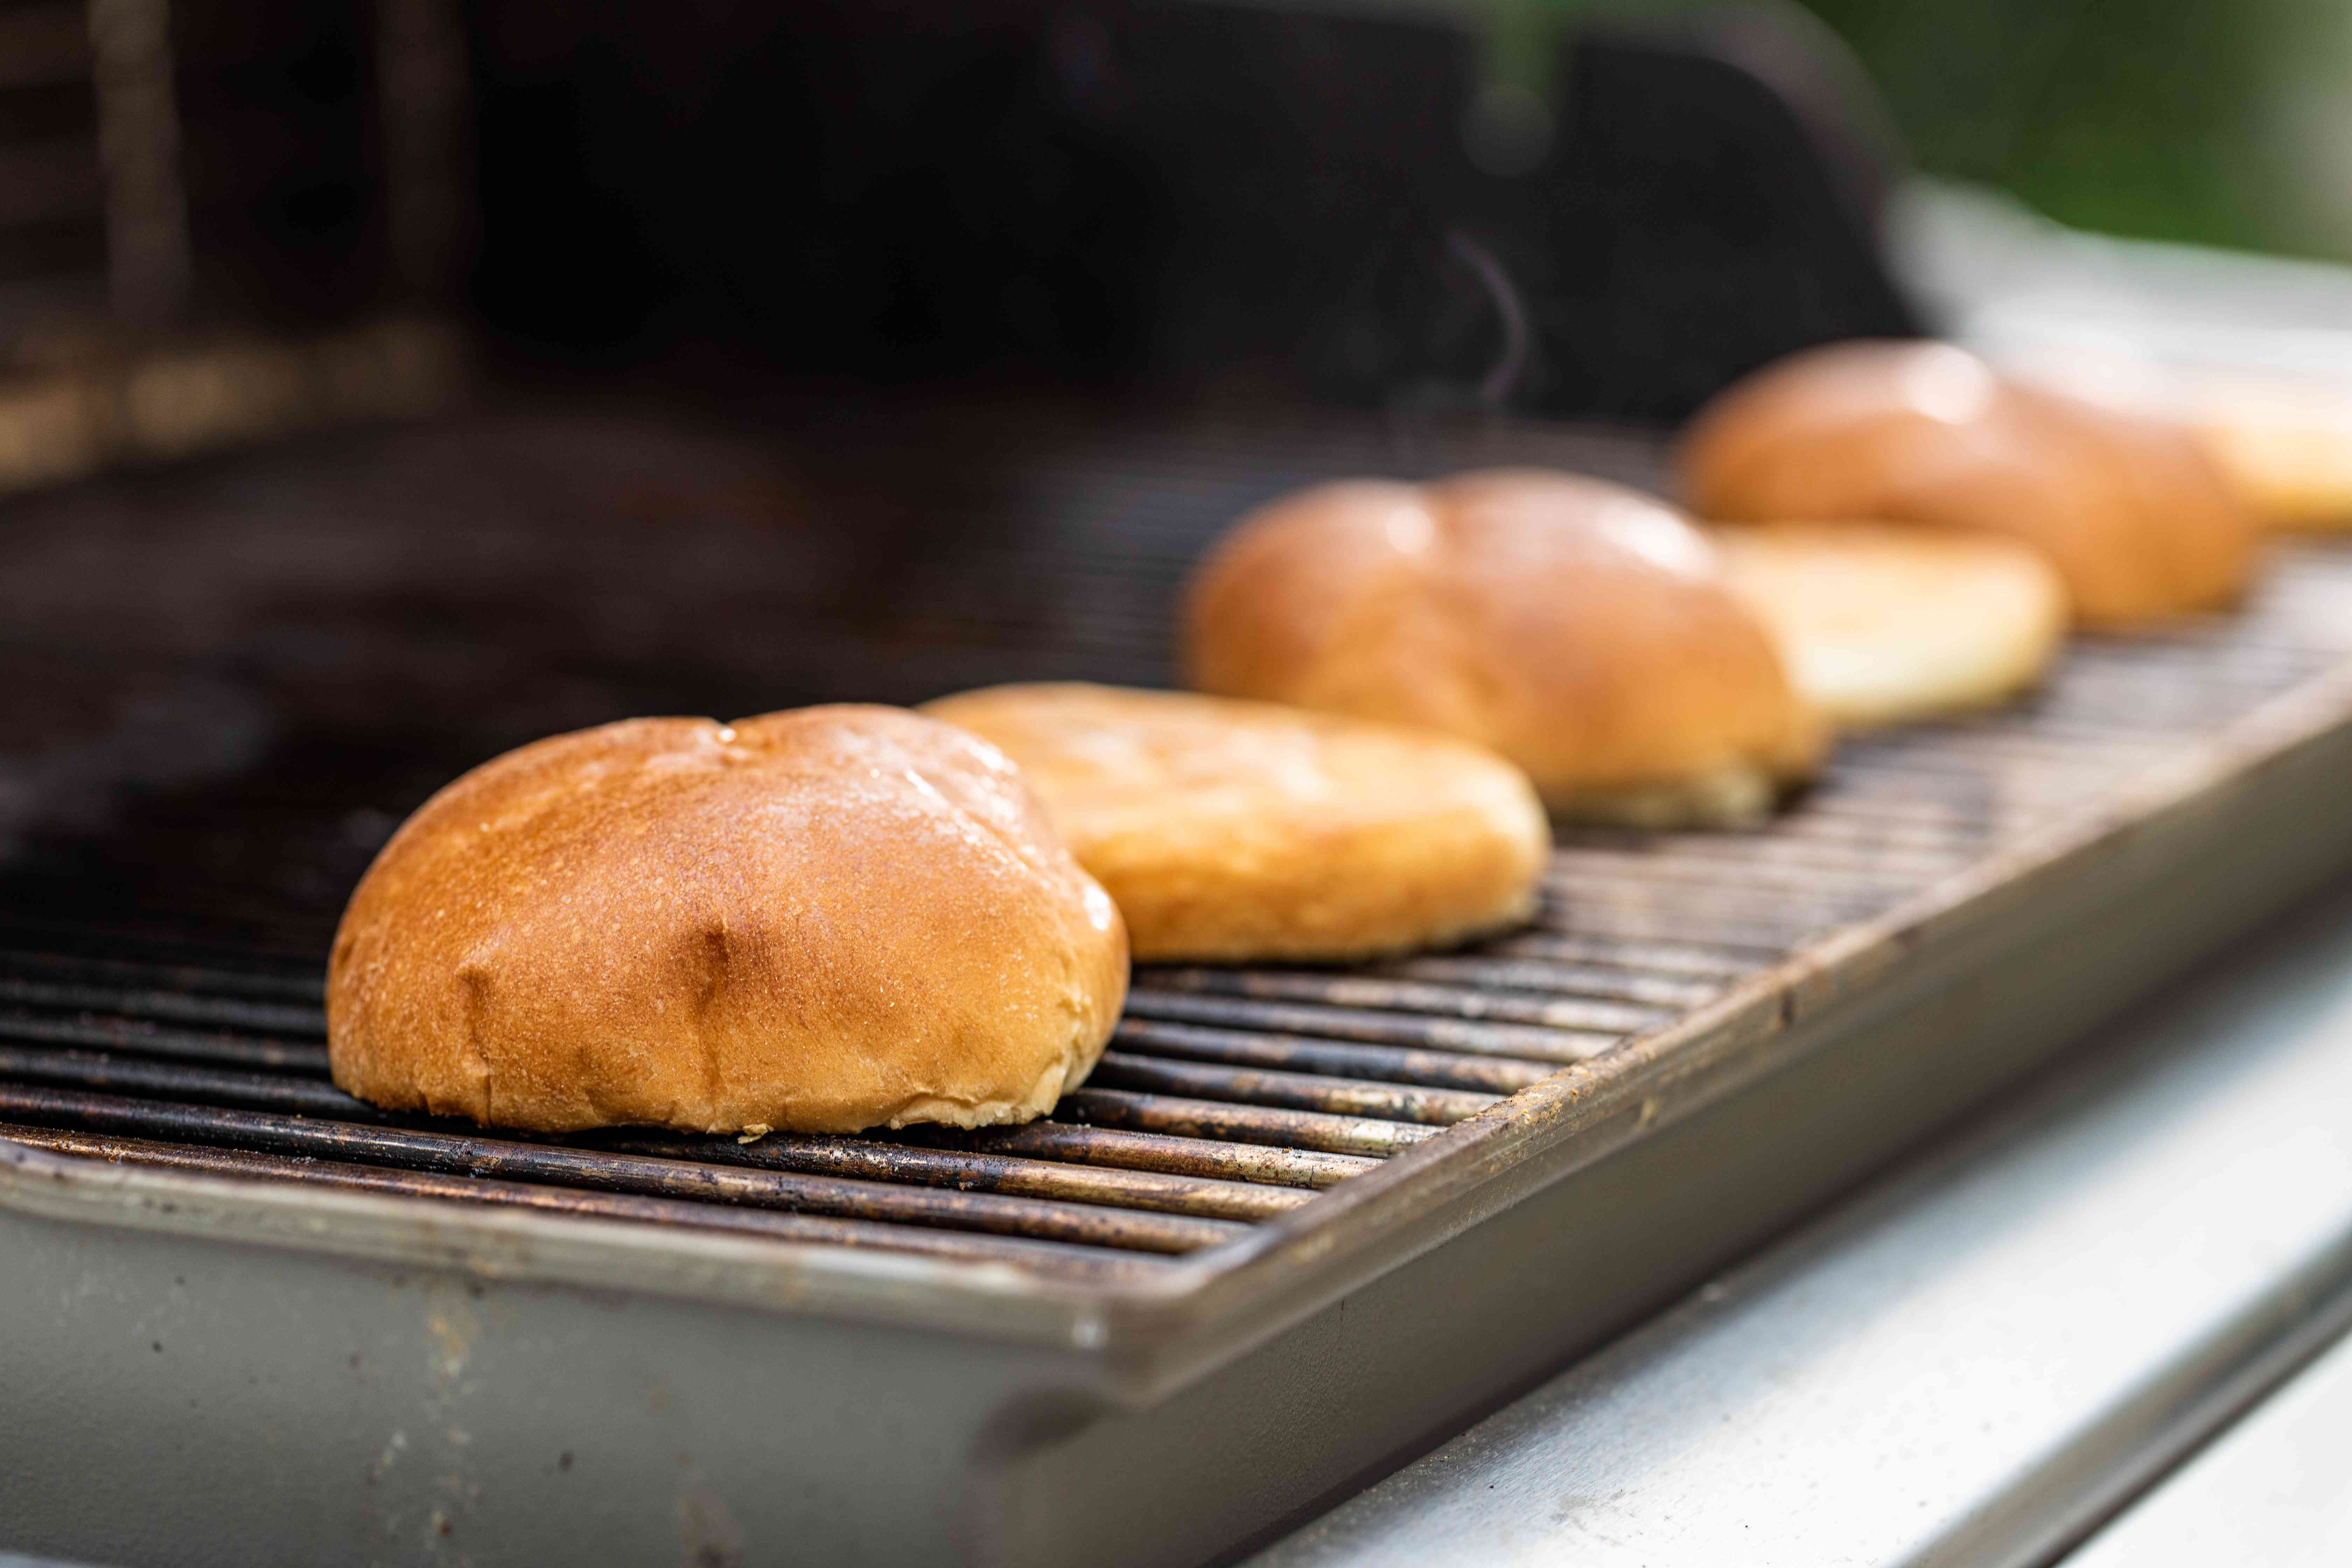 Toasting buns on a grill for the best bacon cheeseburger